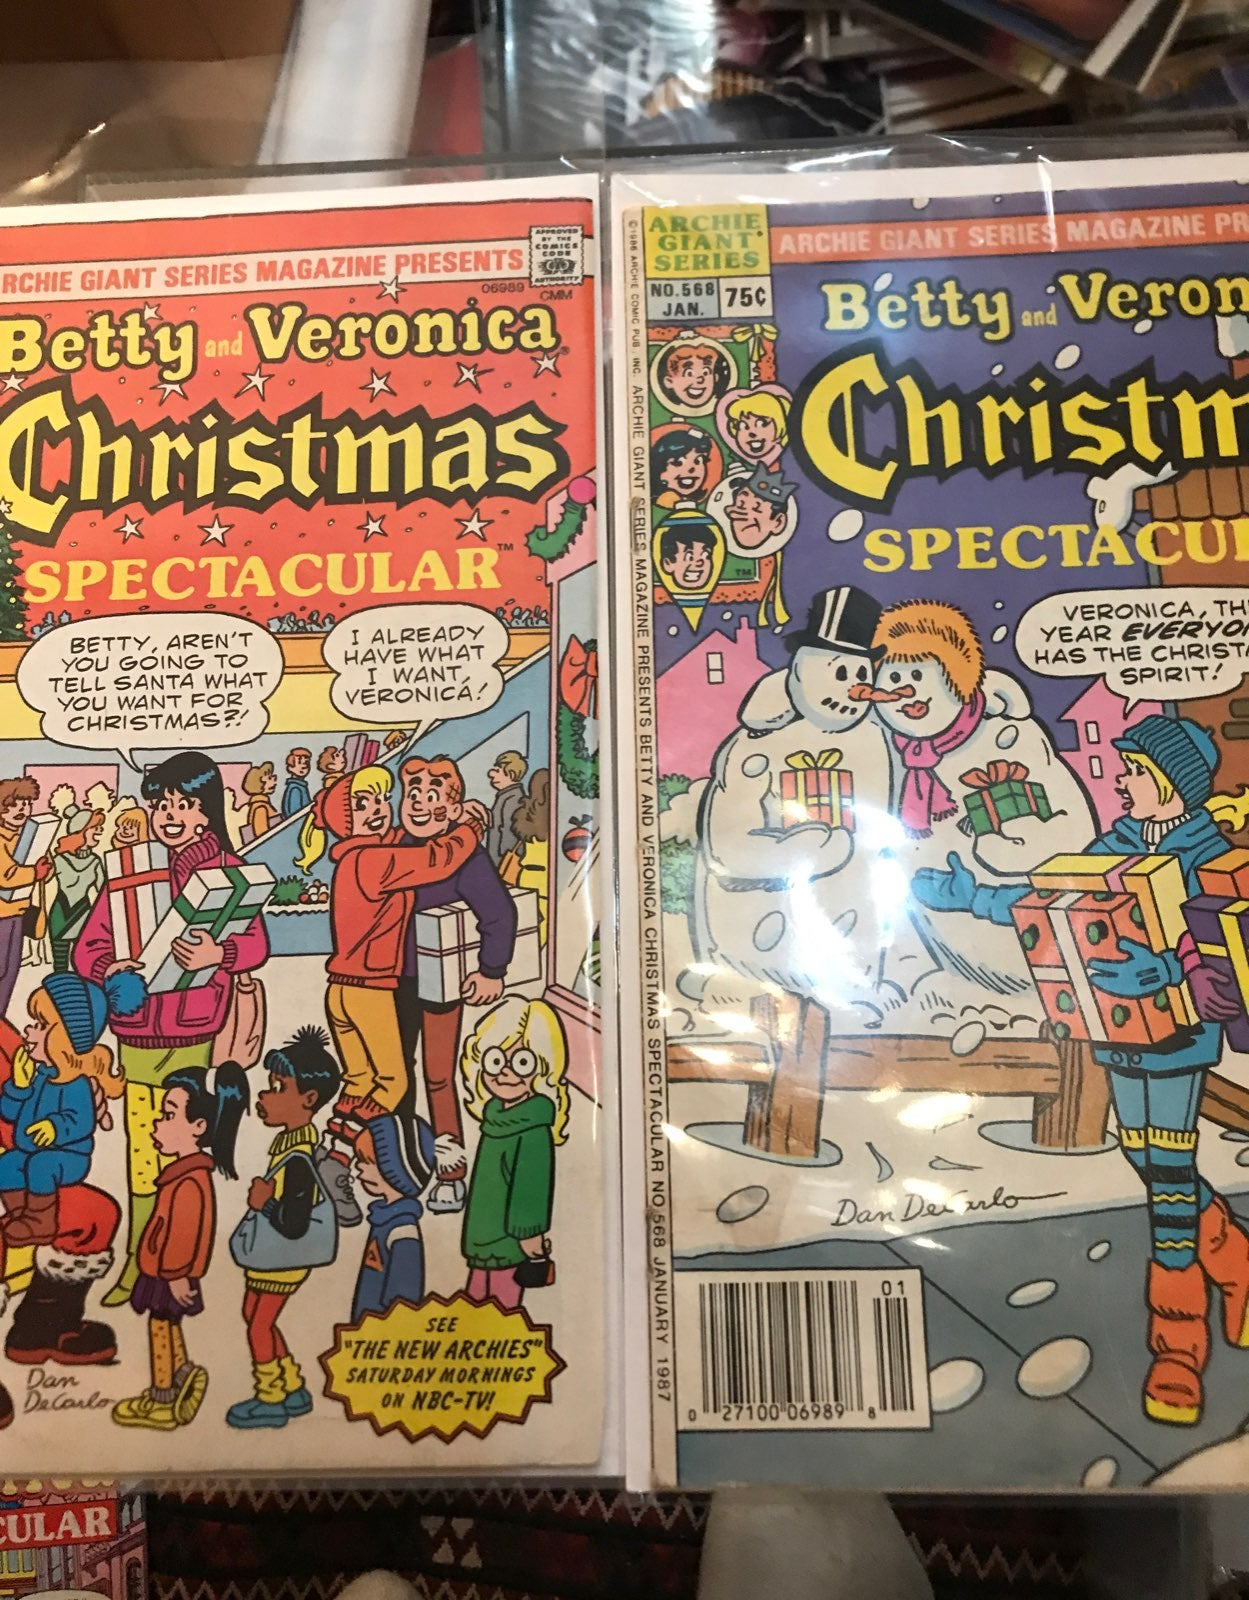 Betty and Veronica XMas issues